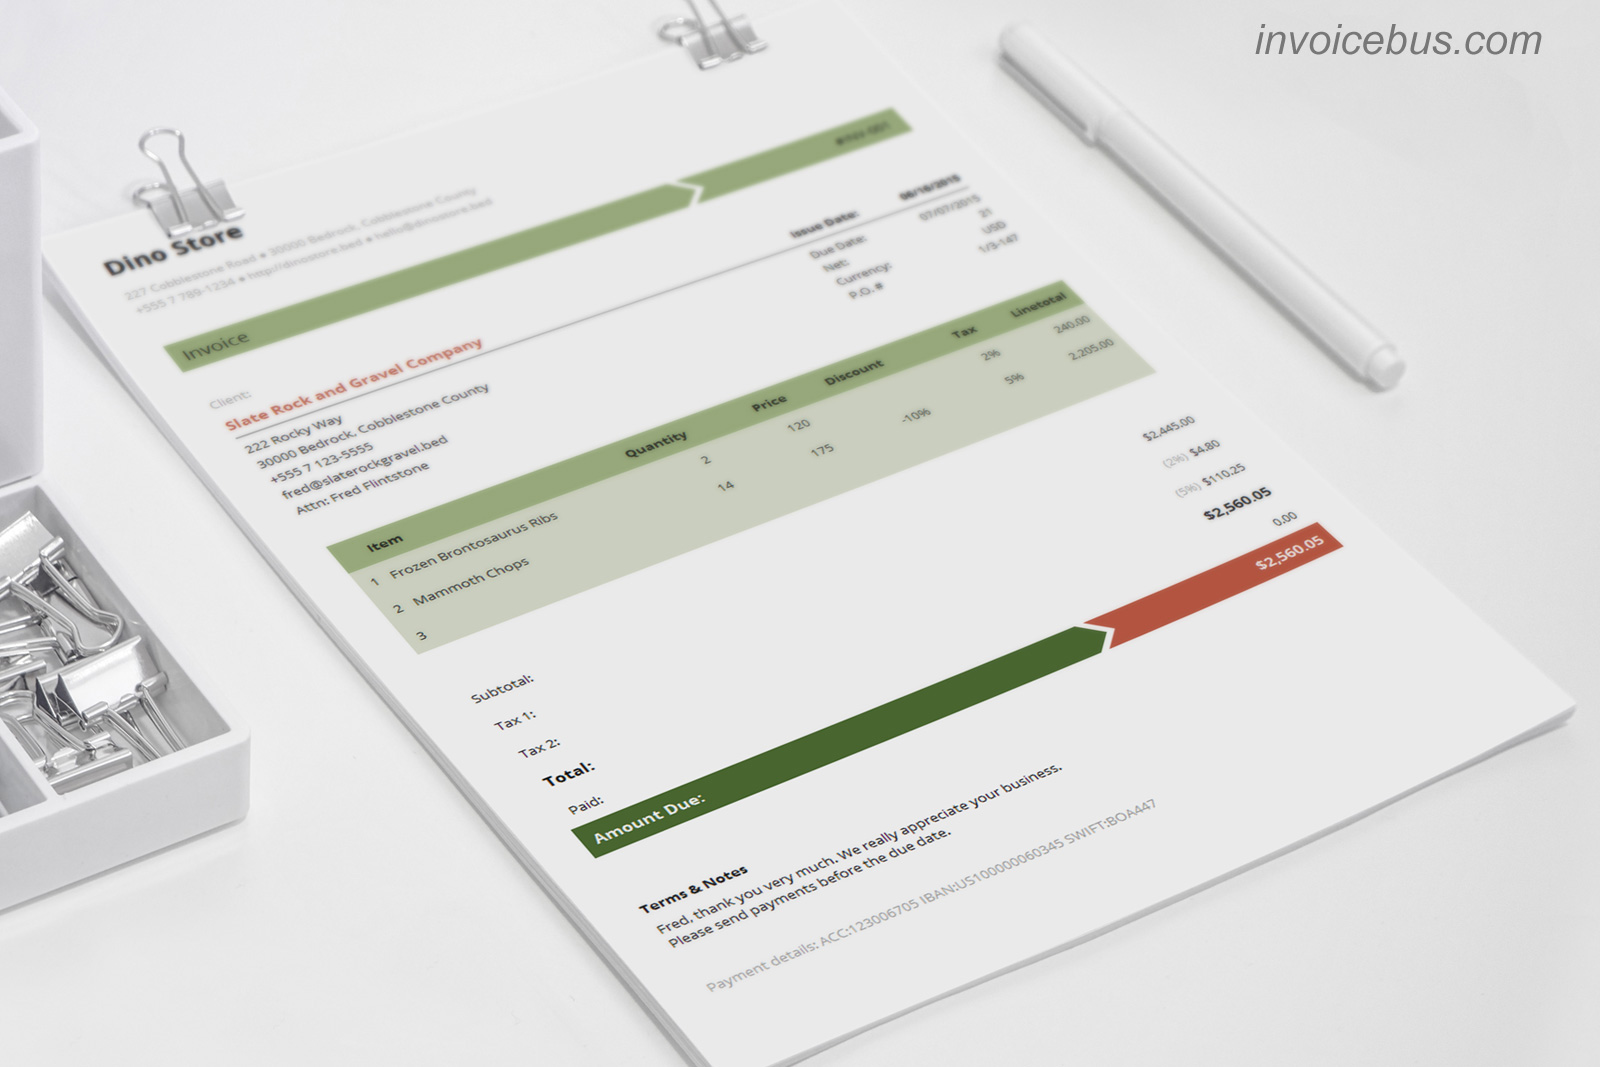 40+ Interactive Invoice Templates, Business & Finance Software, Accounting Software Screenshot